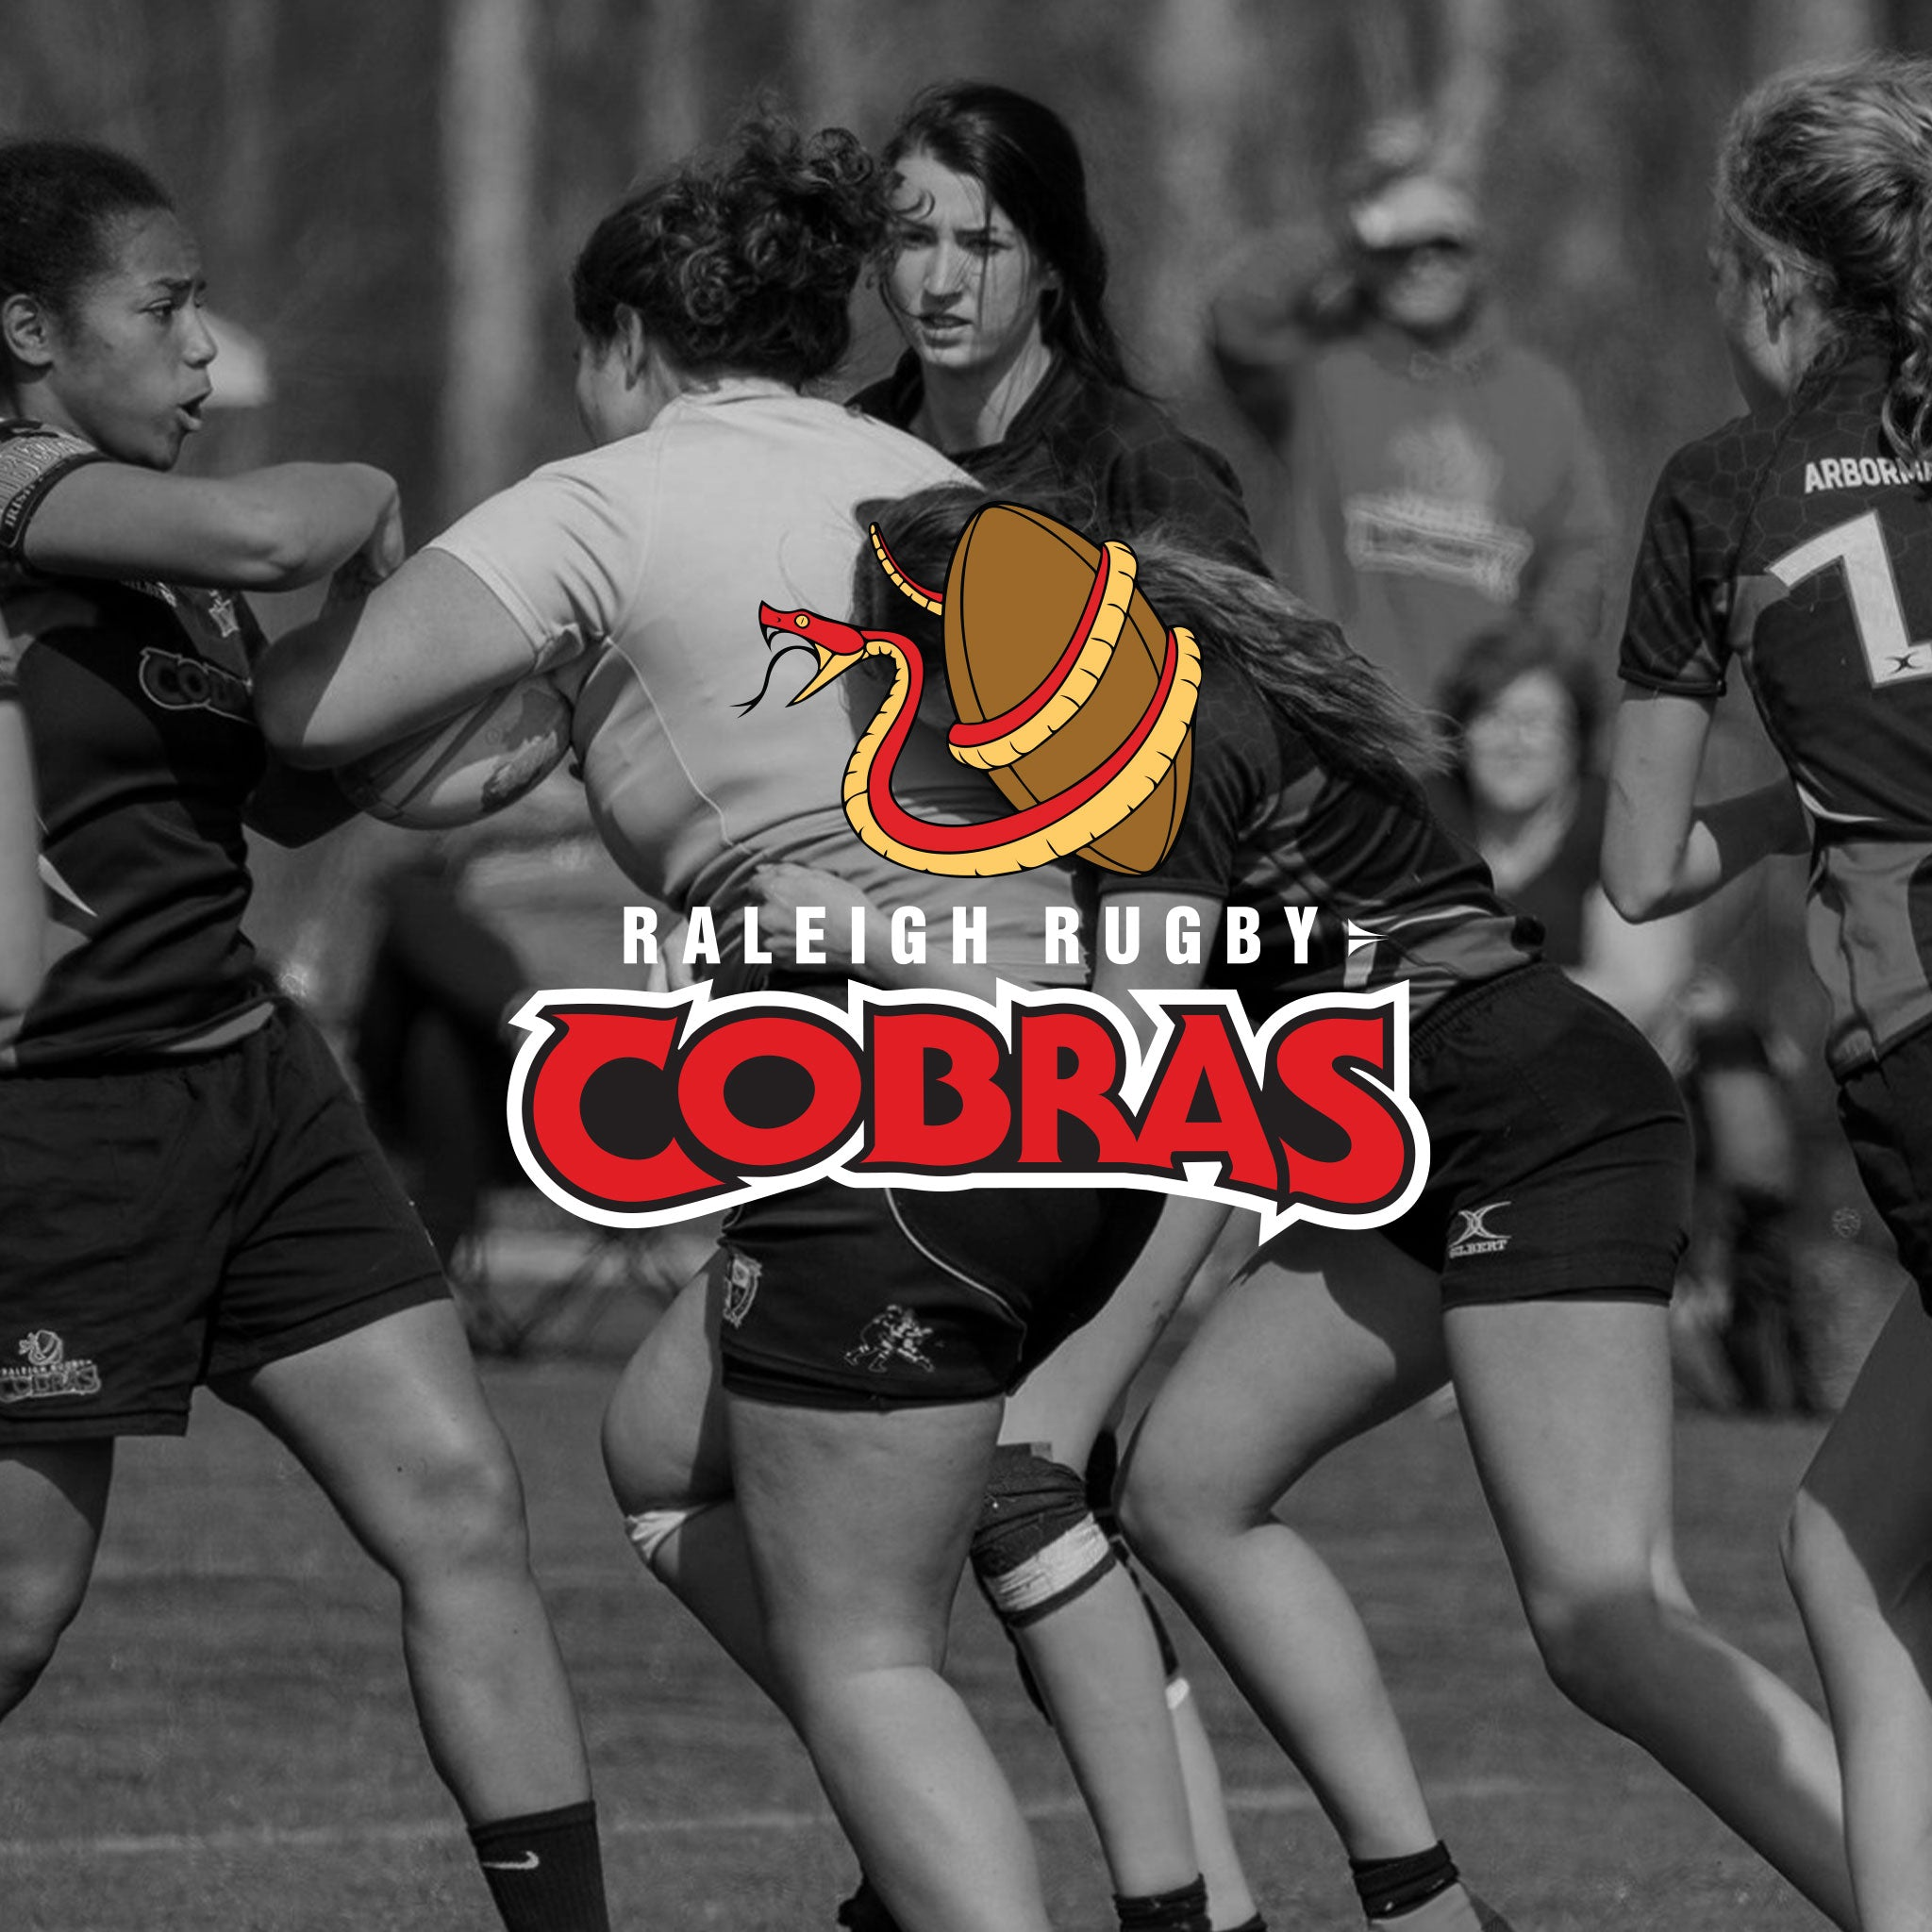 Raleigh Rugby Cobras World Rugby Shop